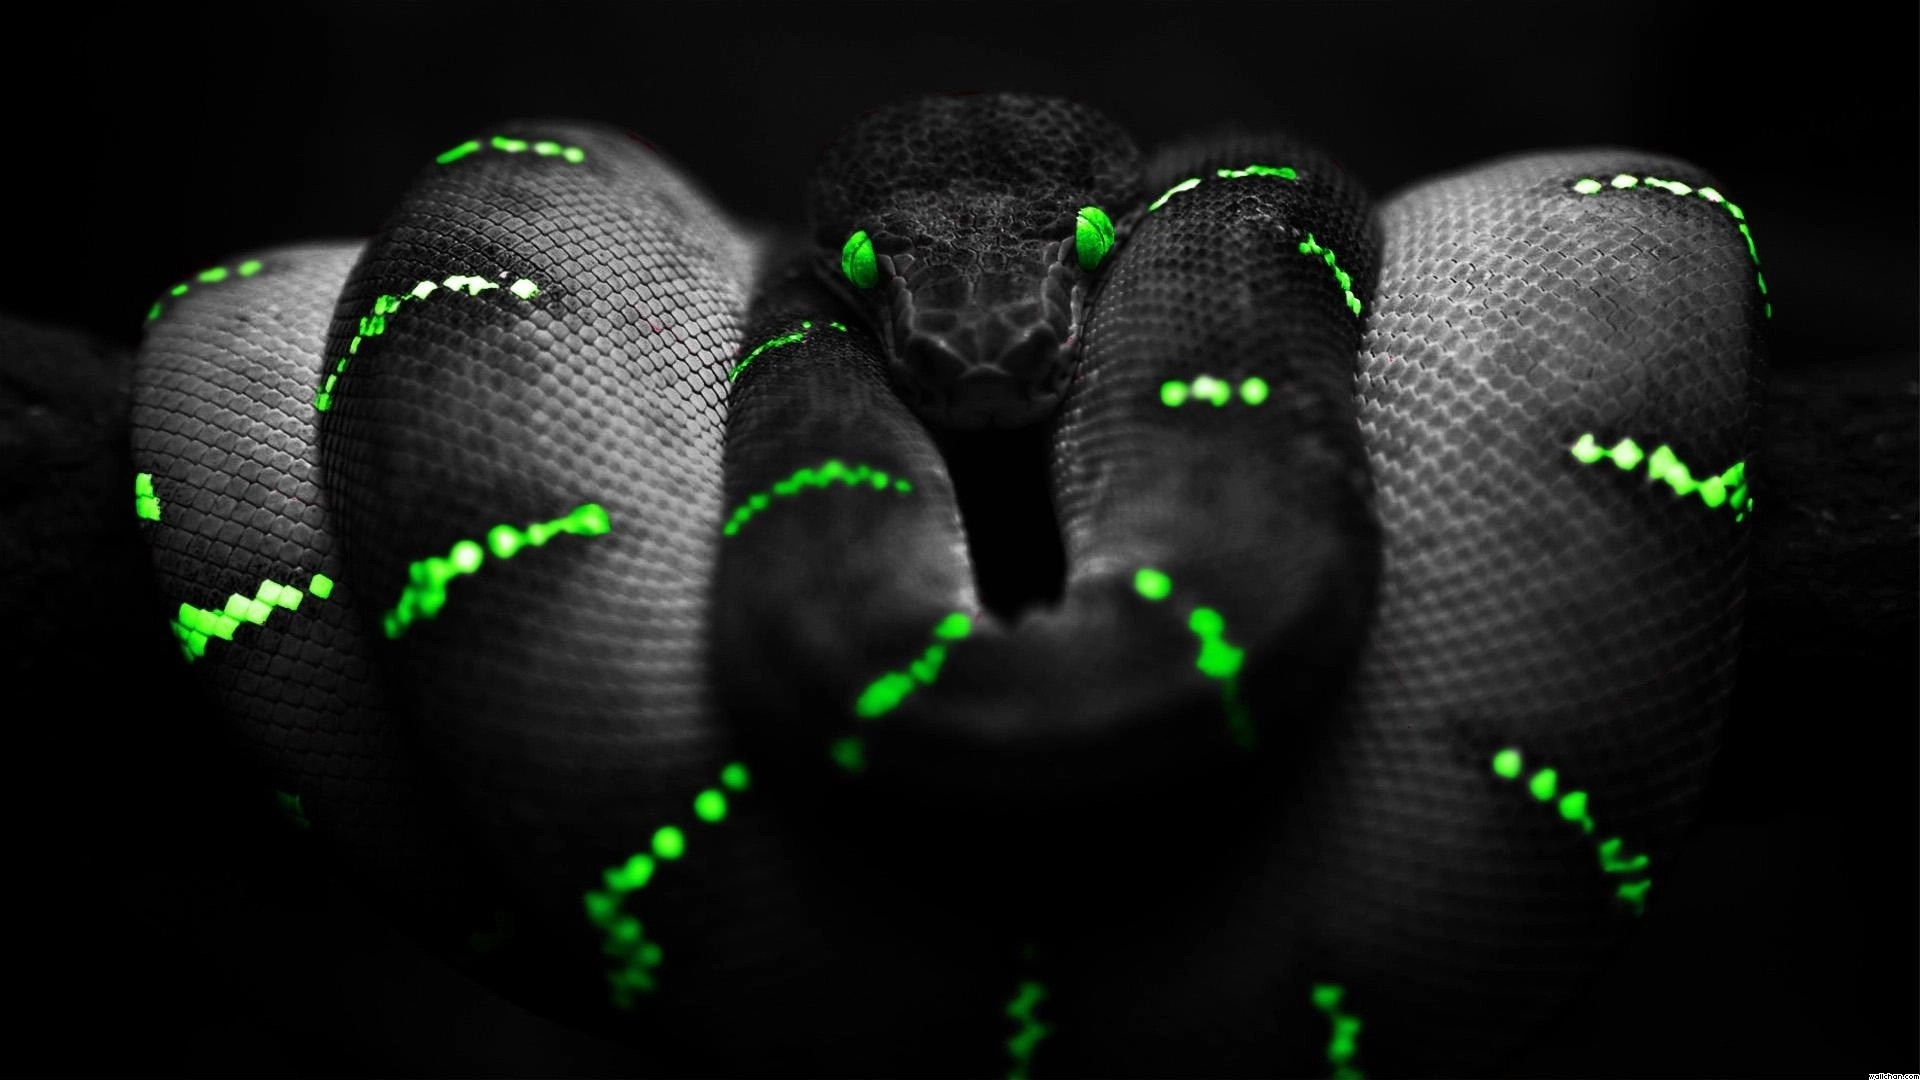 snake Black background